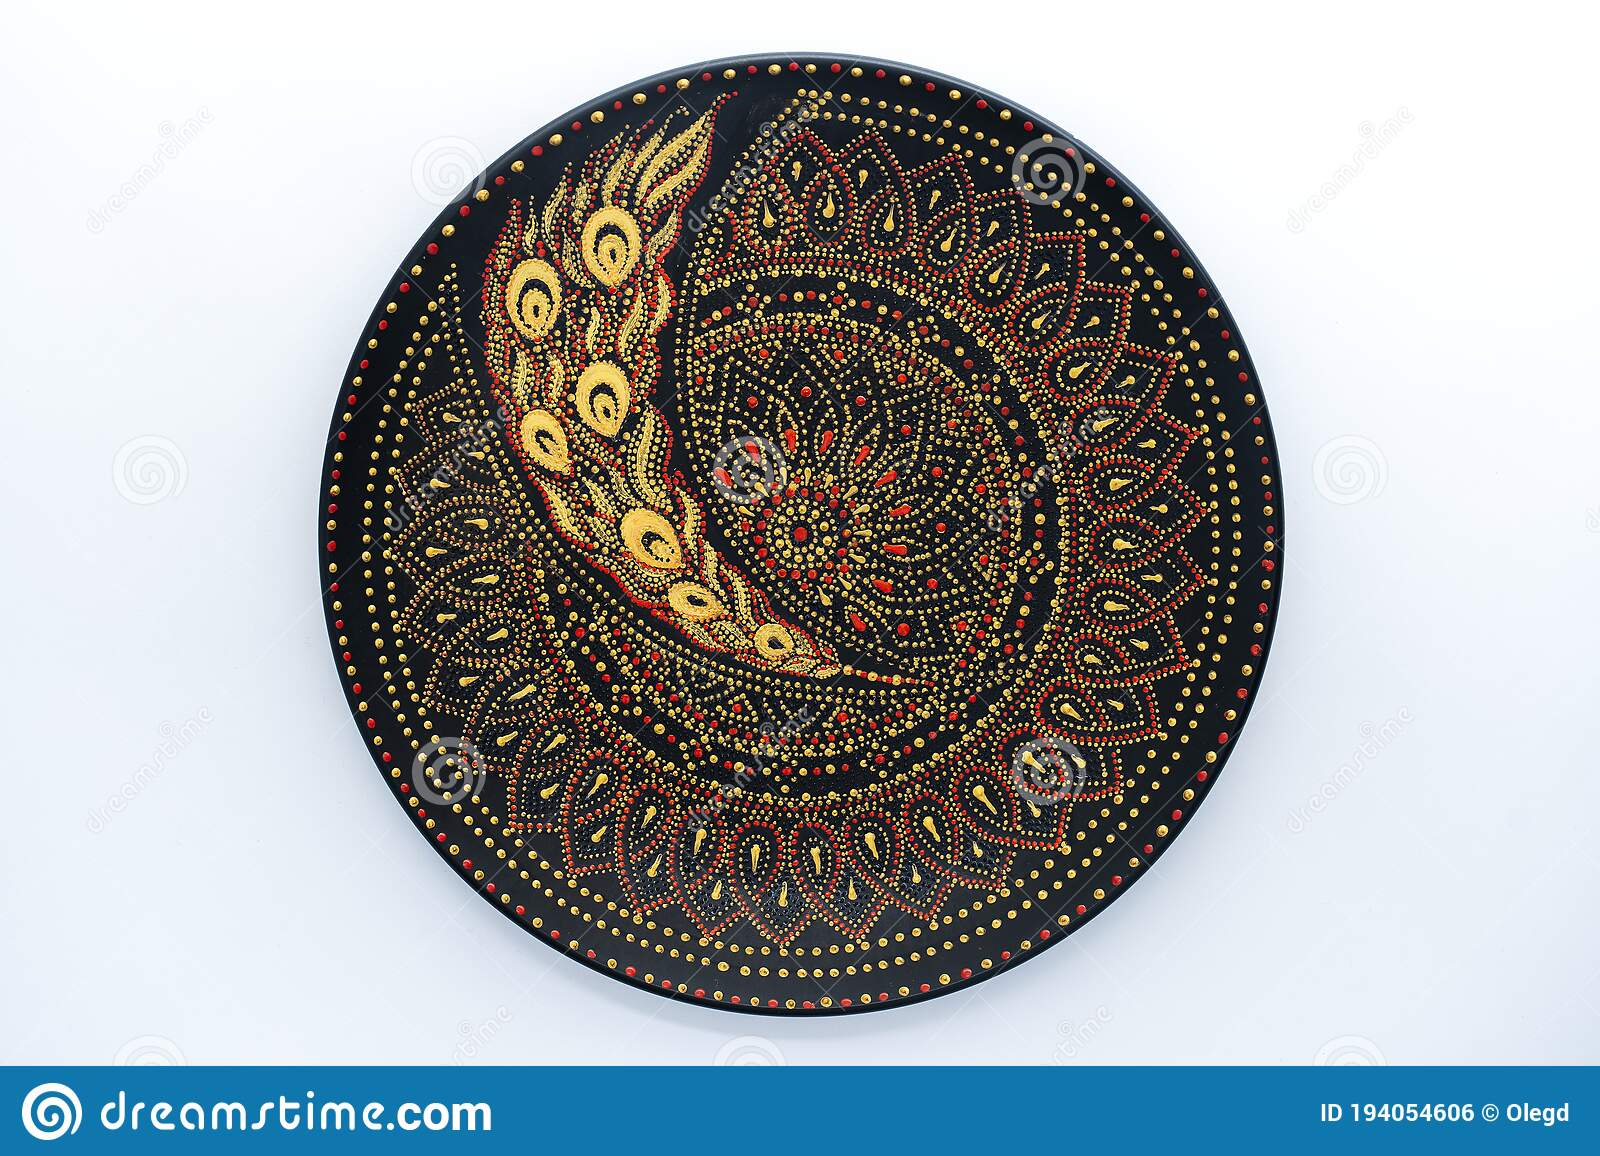 Decorative Ceramic Plate With Black Red And Golden Colors Painted Plate On White Background Dot Painting Stock Photo Image Of Decorative Antique 194054606